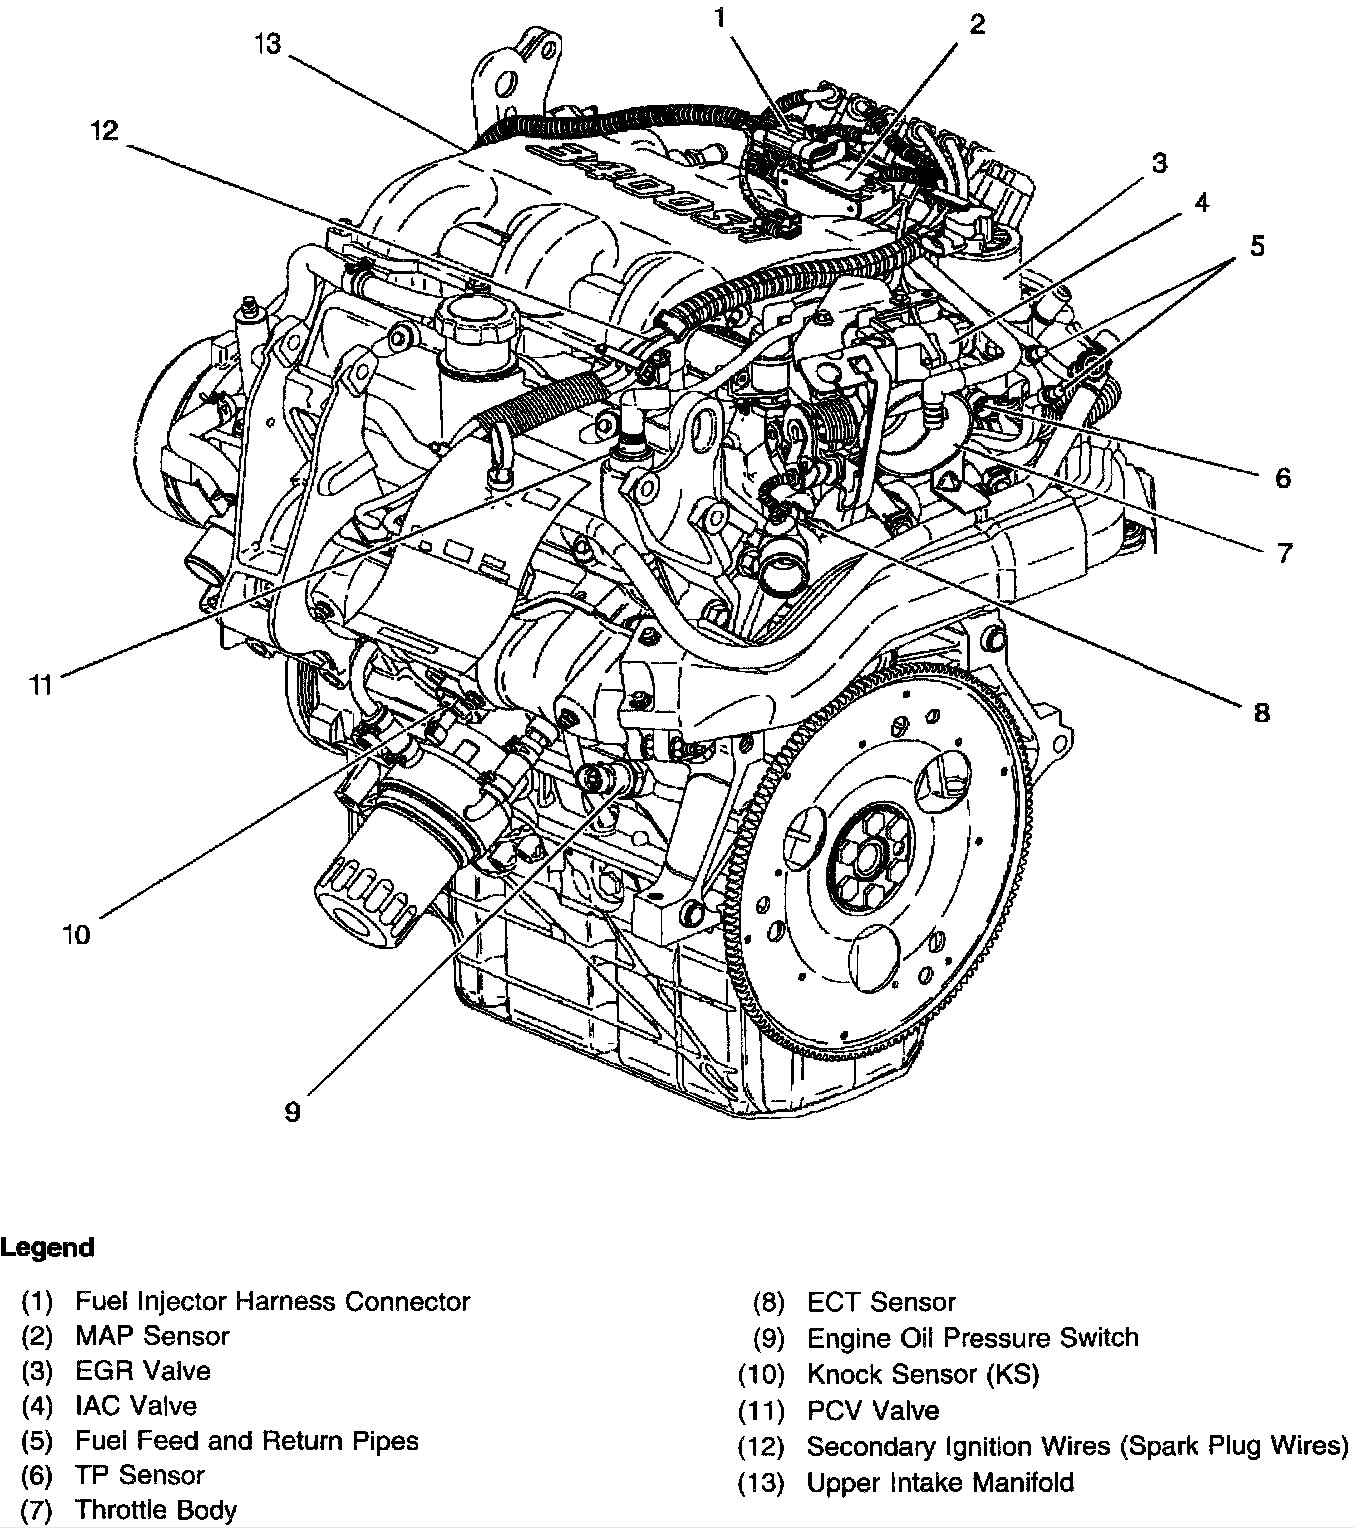 hight resolution of 2002 f150 4 2 v6 engine diagram